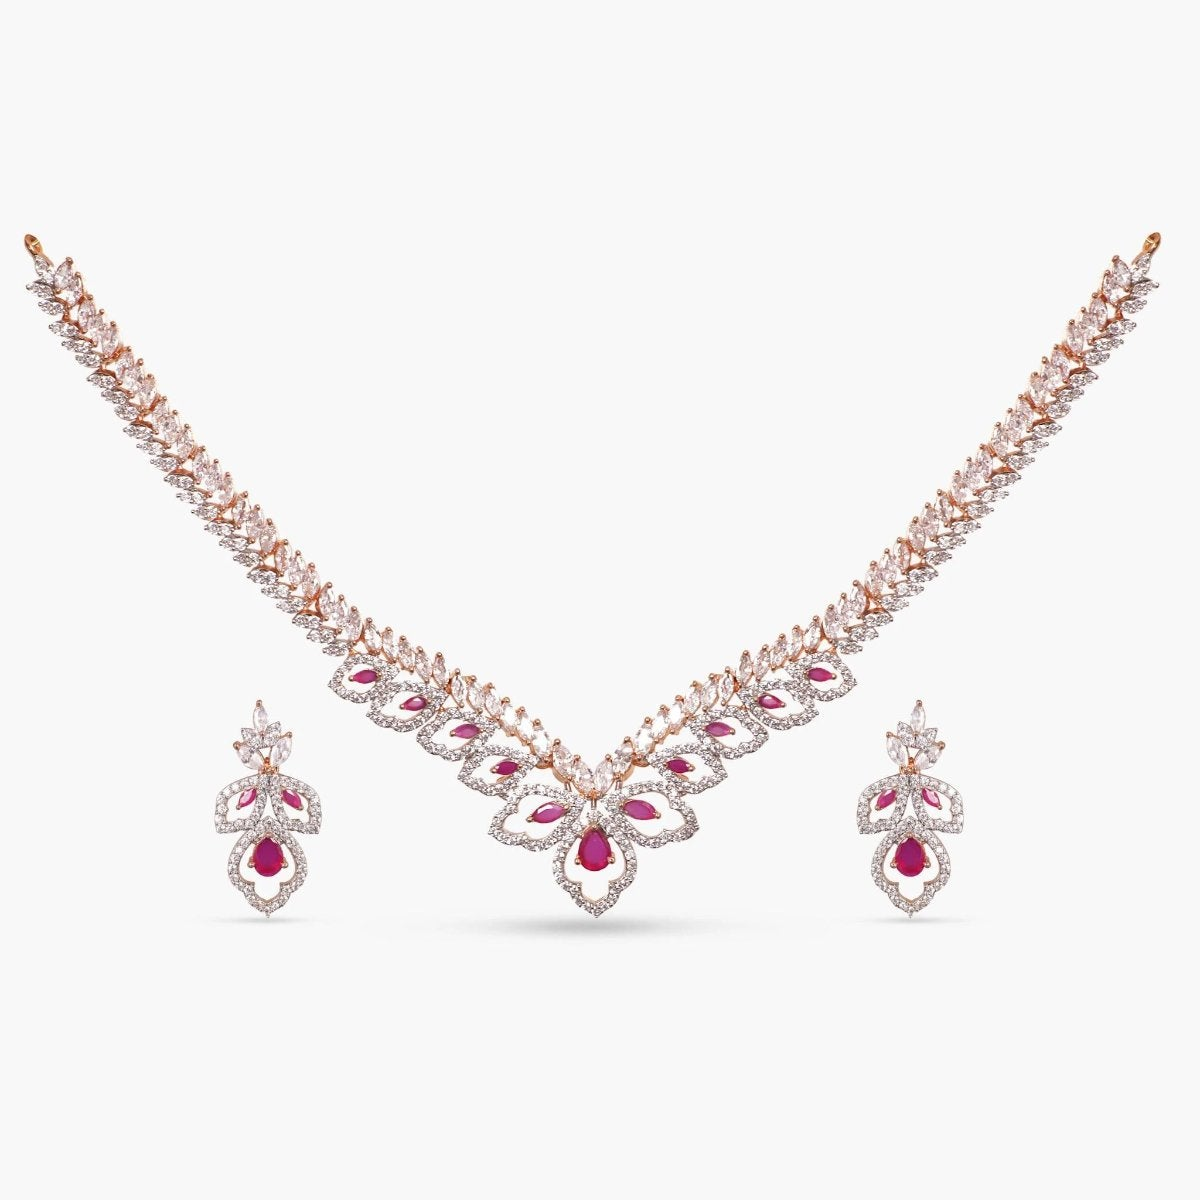 Advika Nakshatra CZ Necklace Set